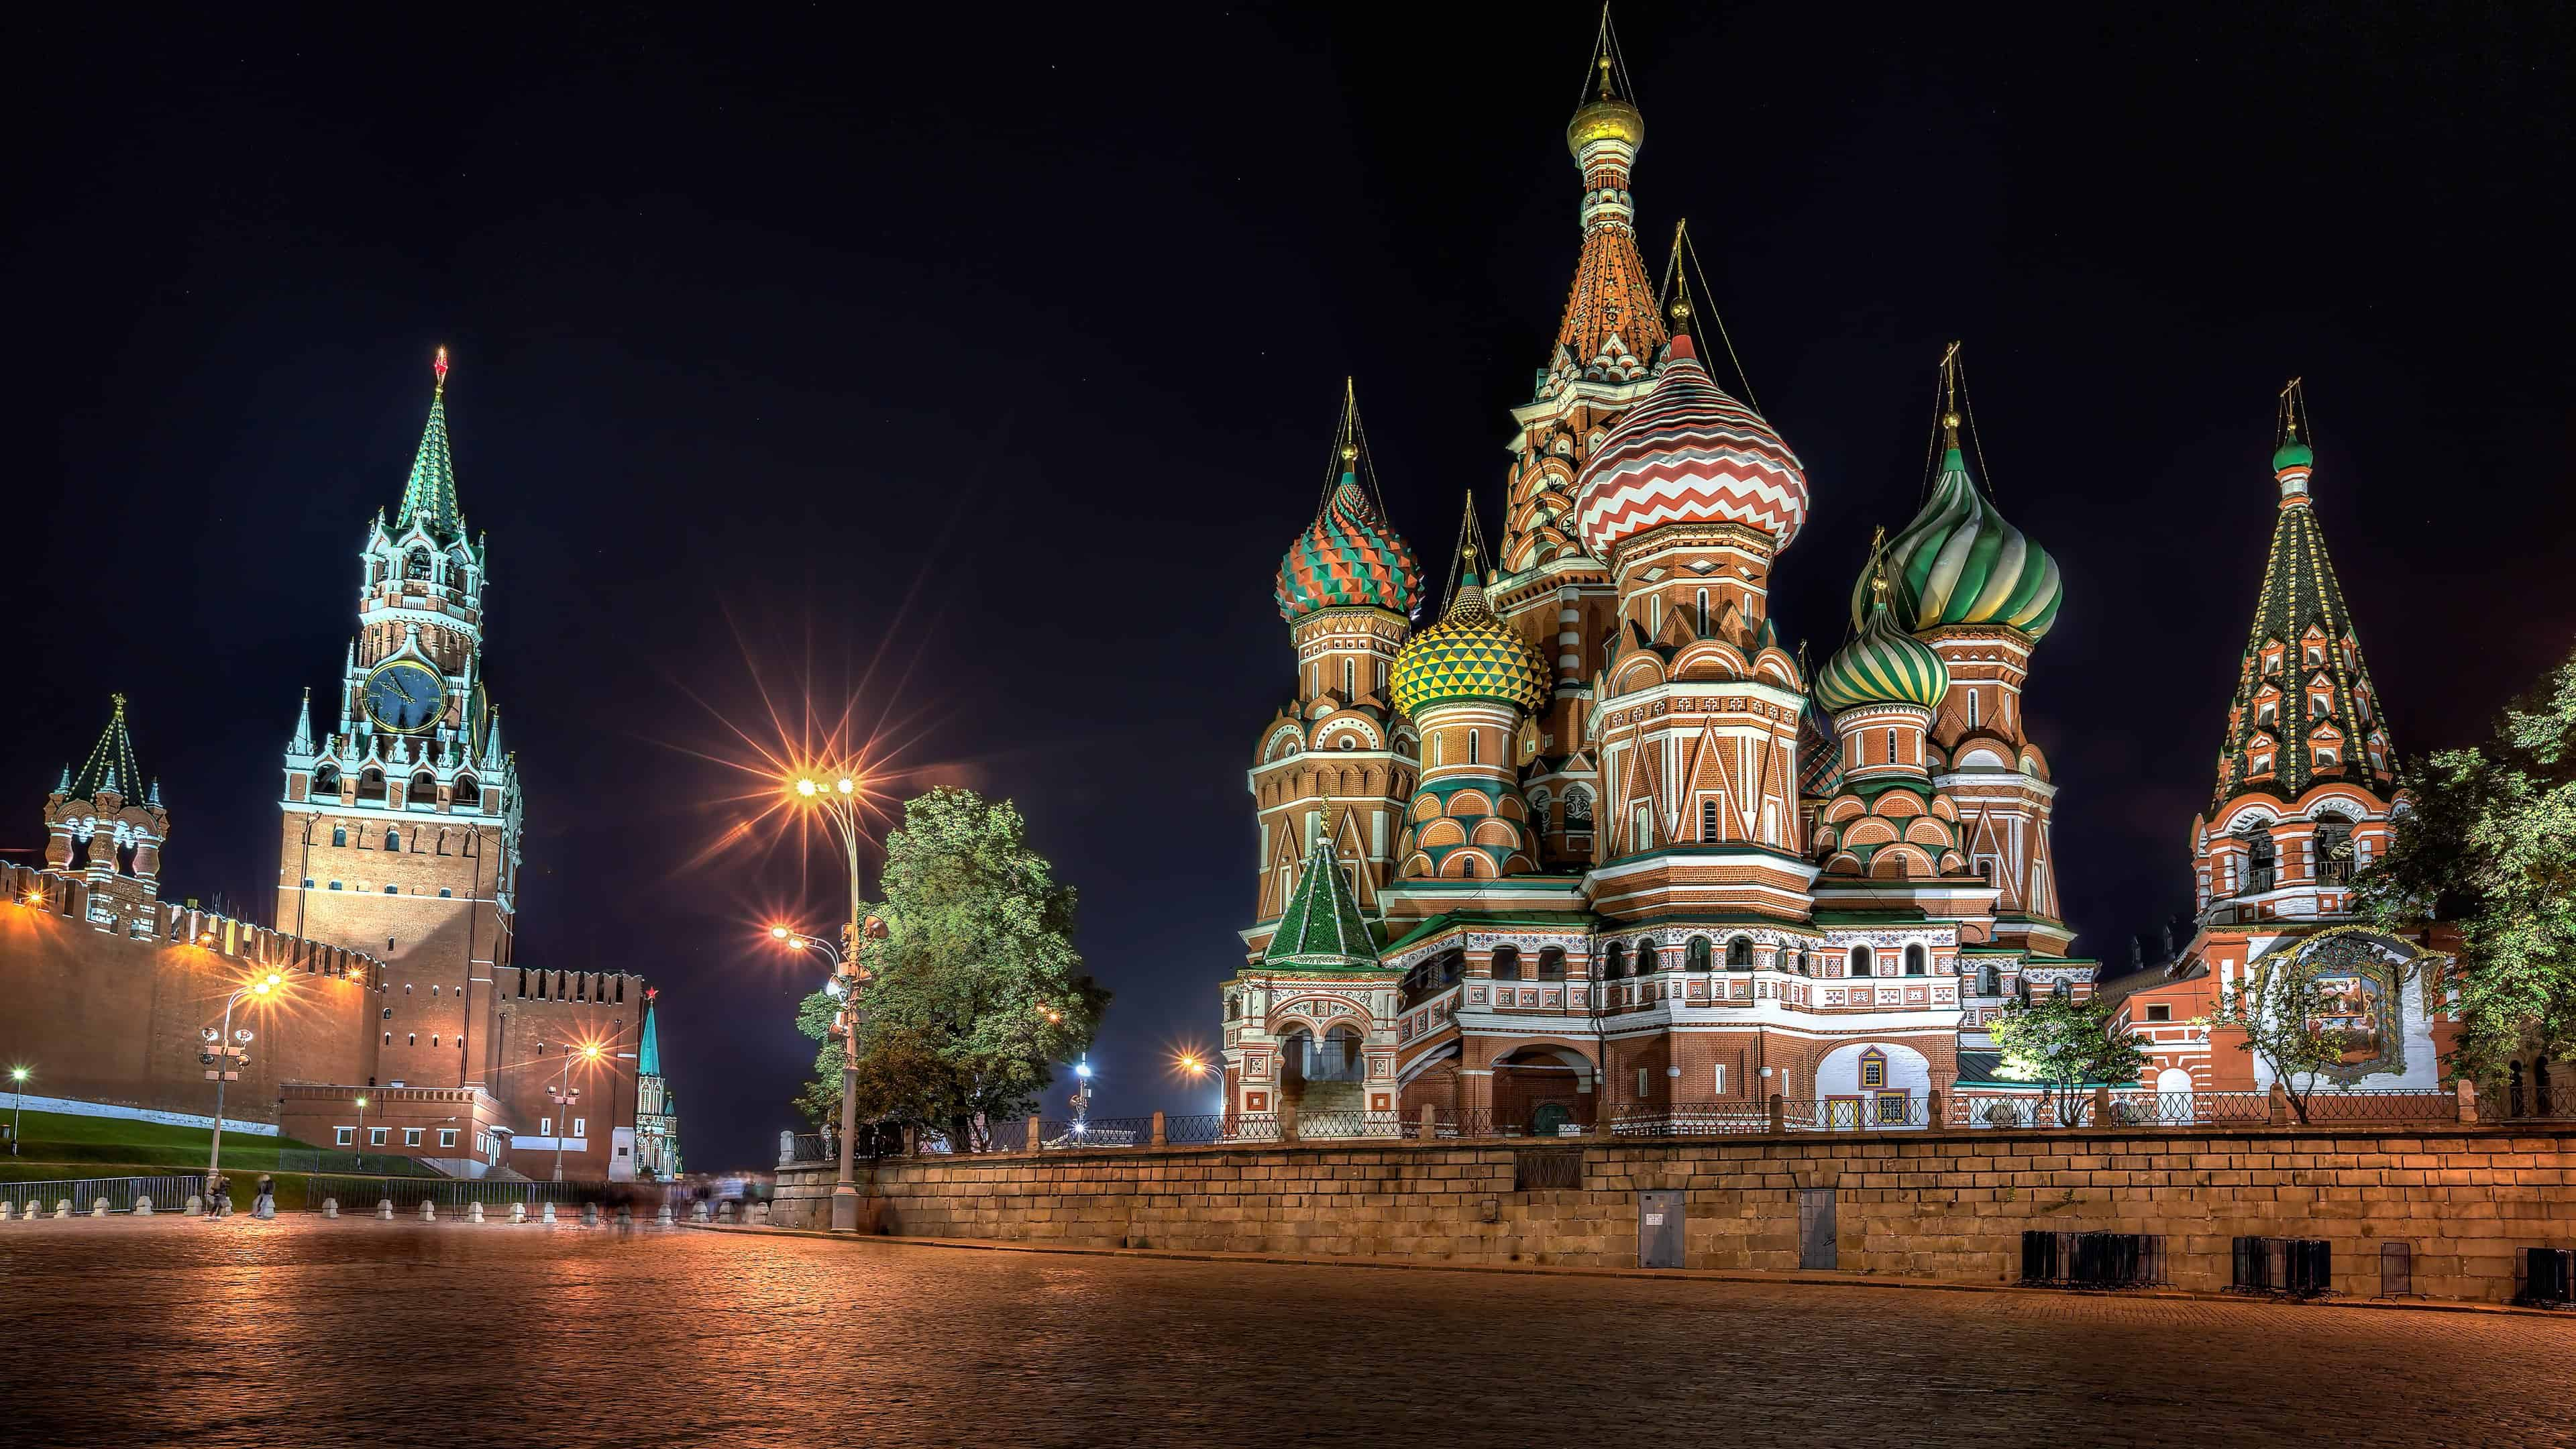 Red Square At Night Moscow Russia UHD 4K Wallpaper | Pixelz